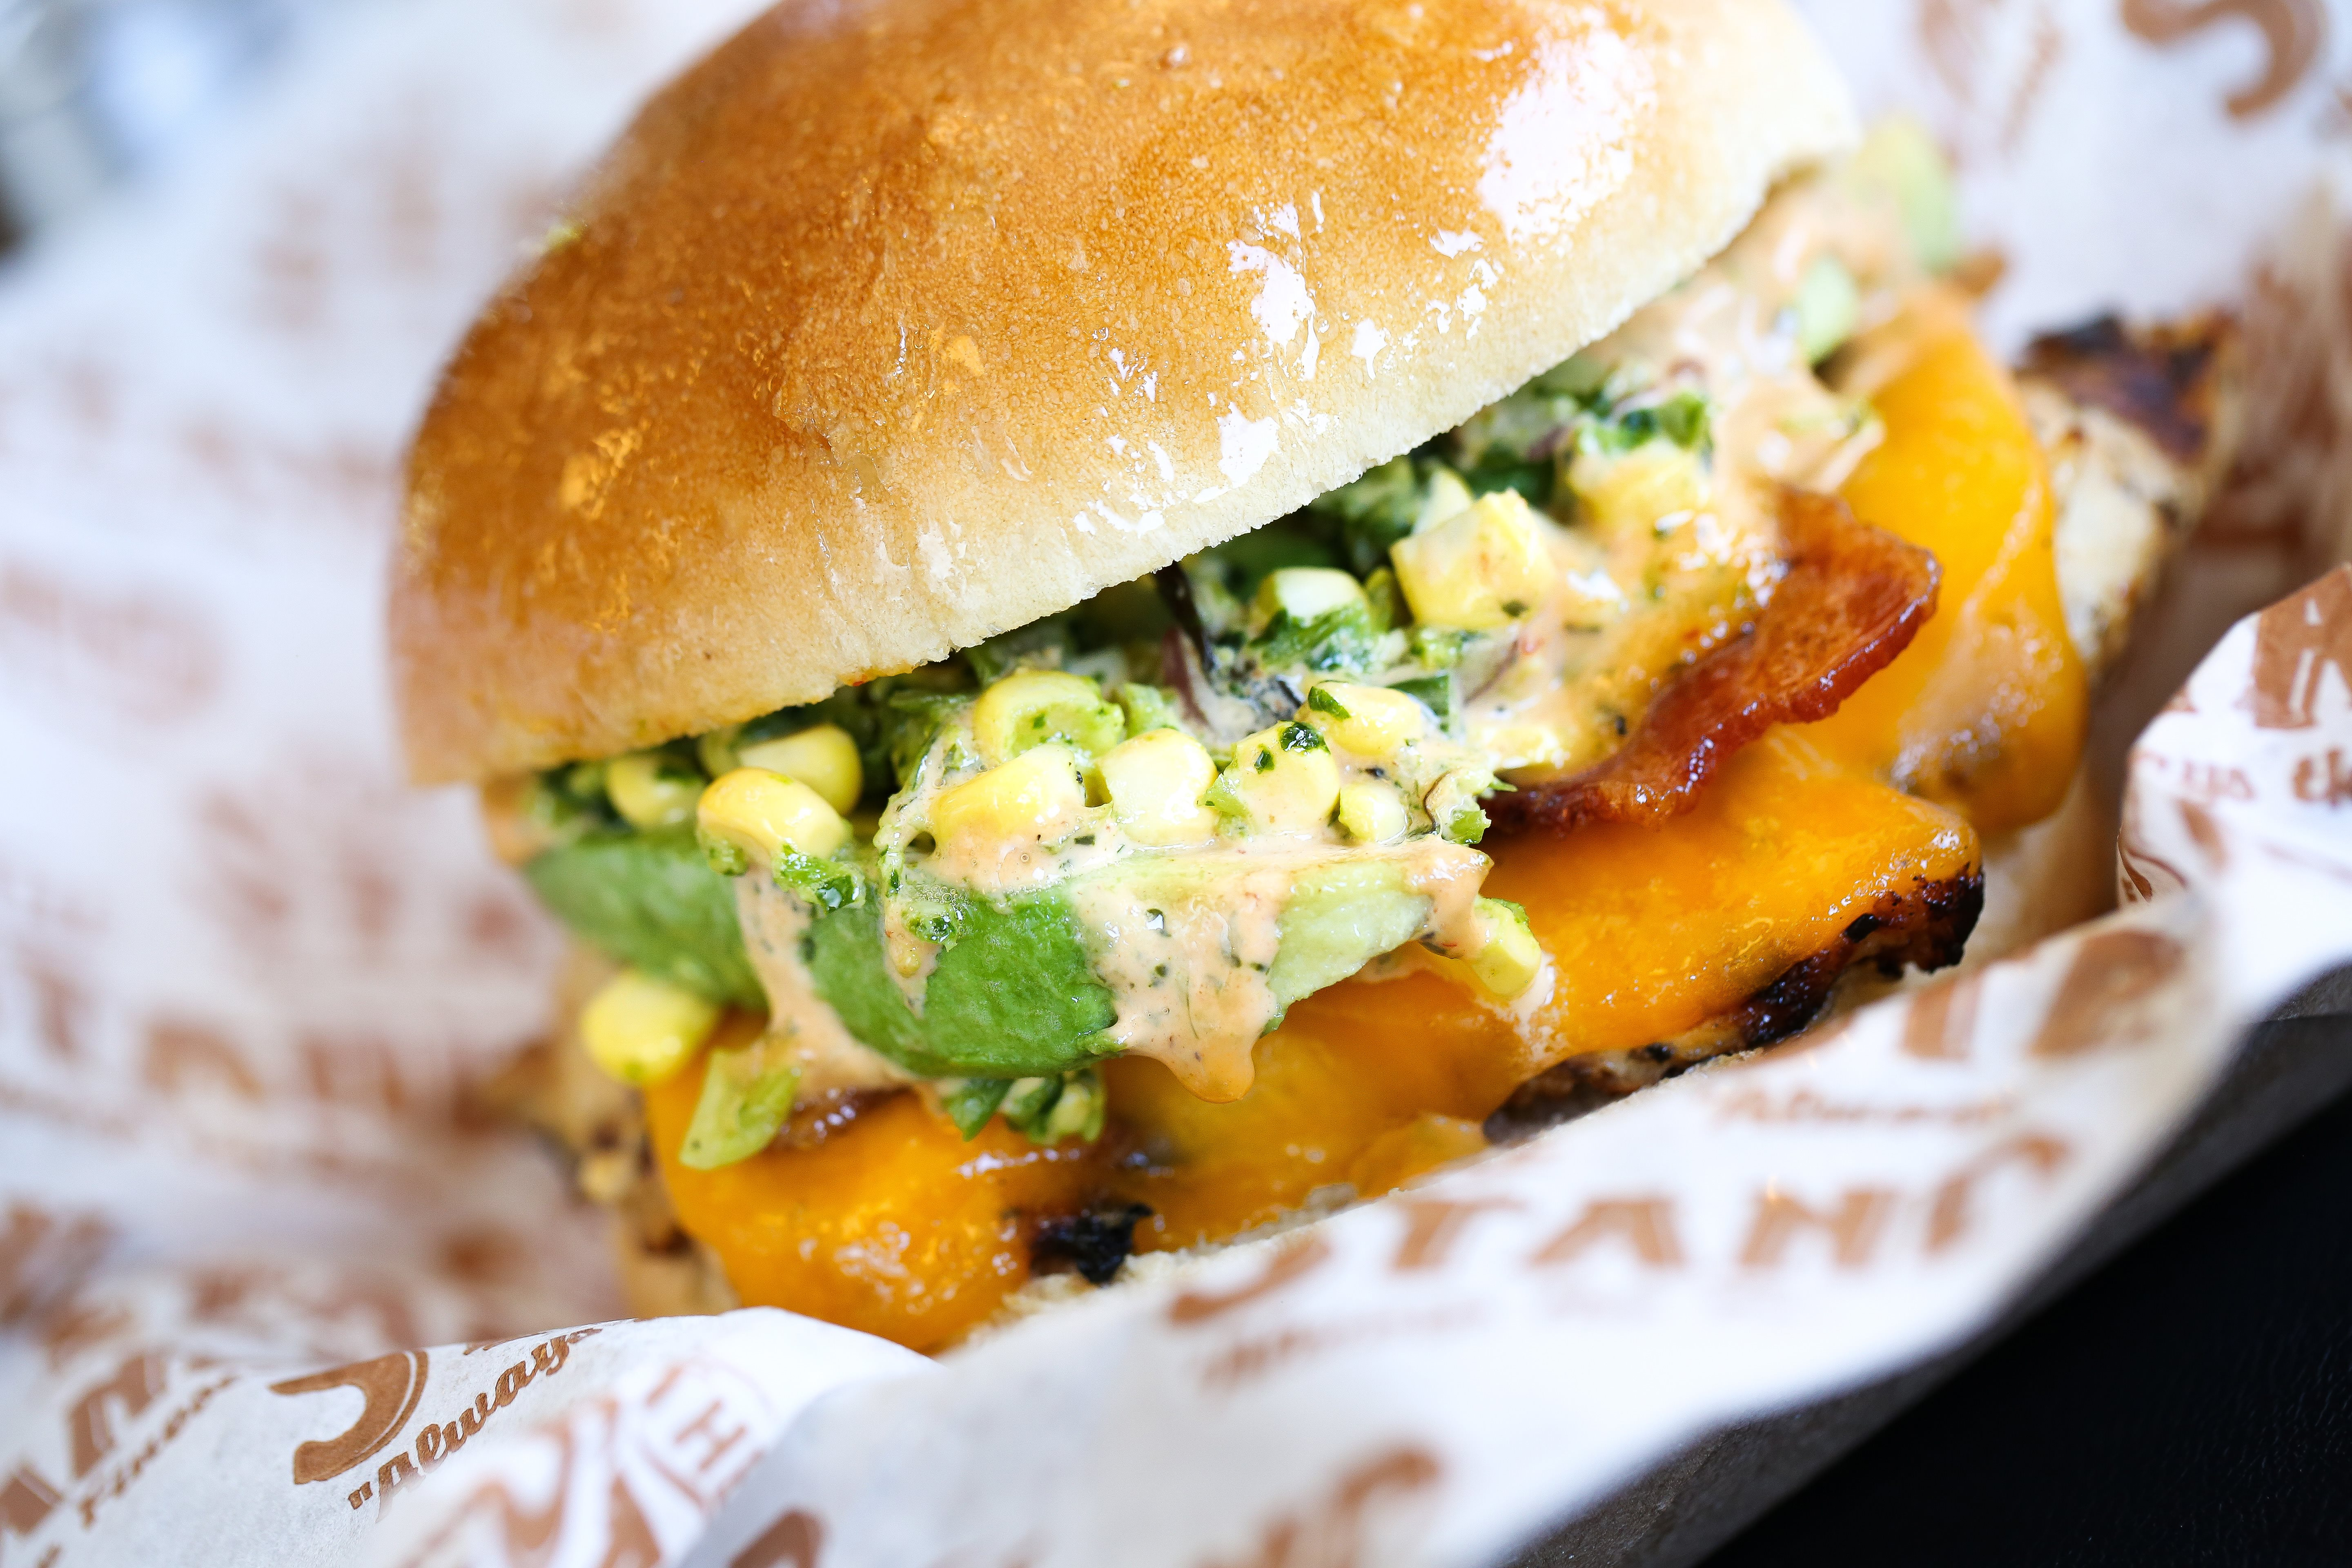 South-West-Chicken-Sandwich_The-Stand_m1.jpg